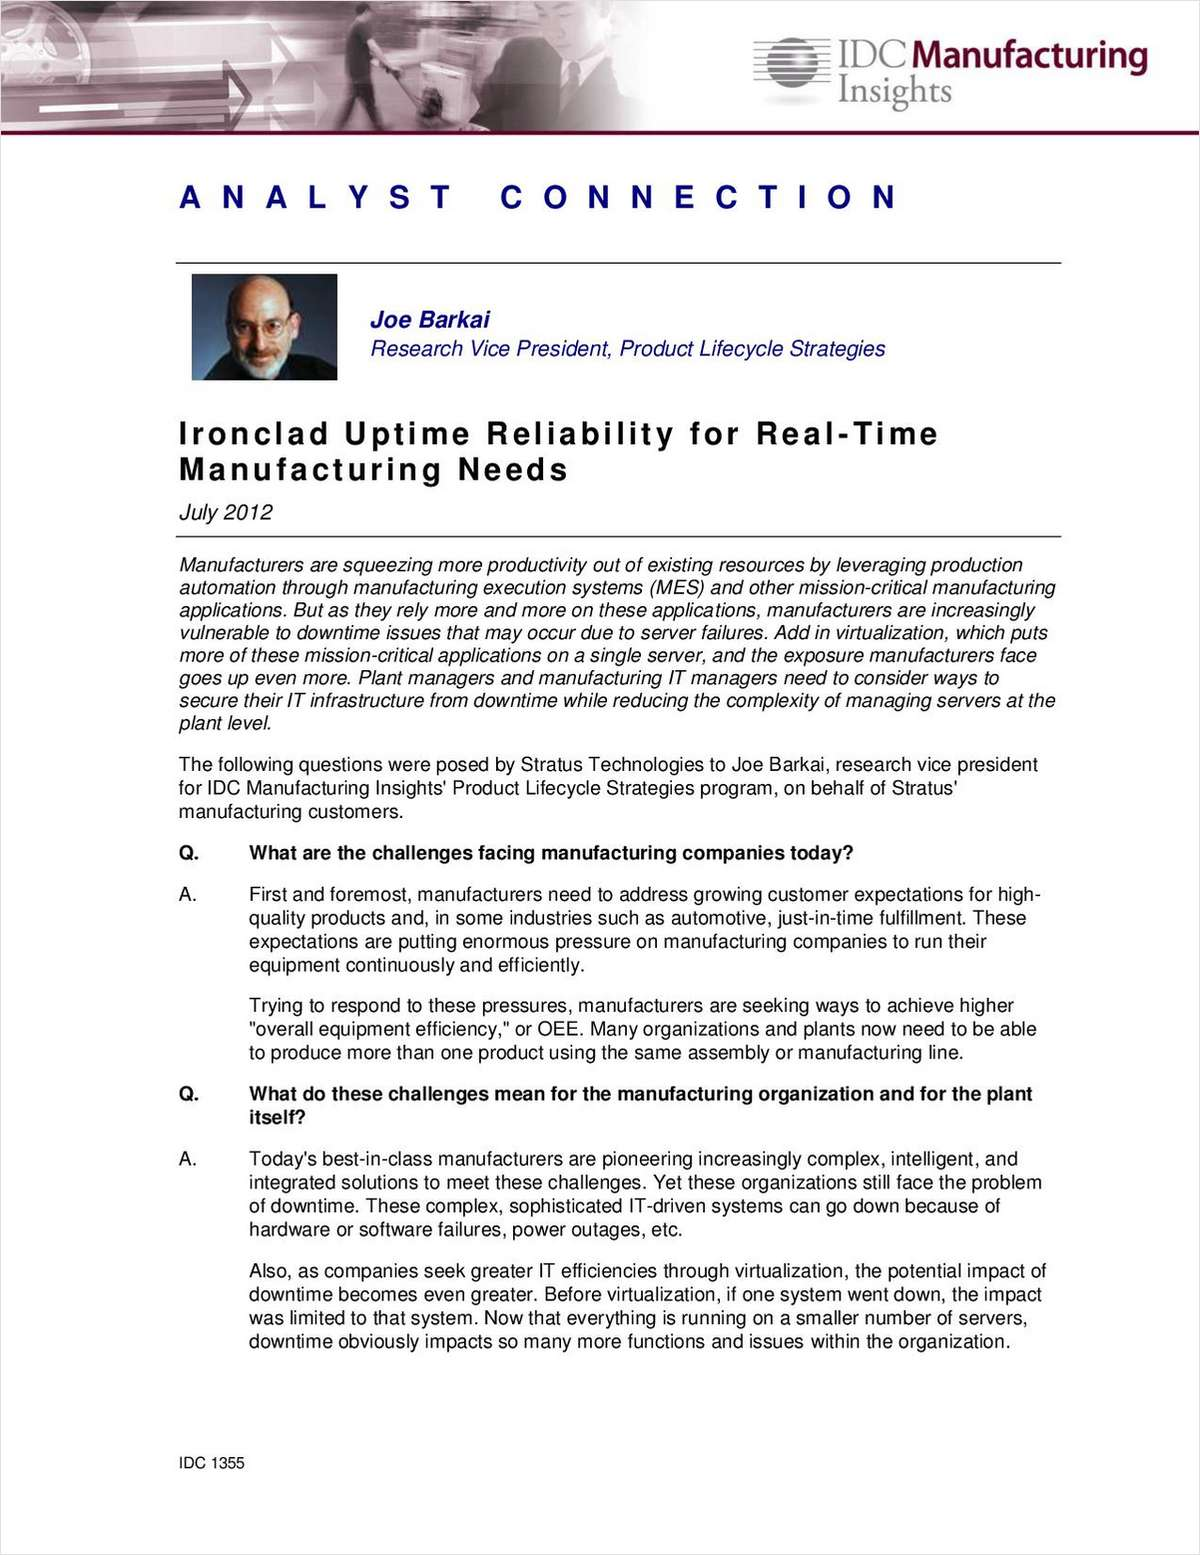 Ironclad Uptime Reliability for Real-Time Manufacturing Needs